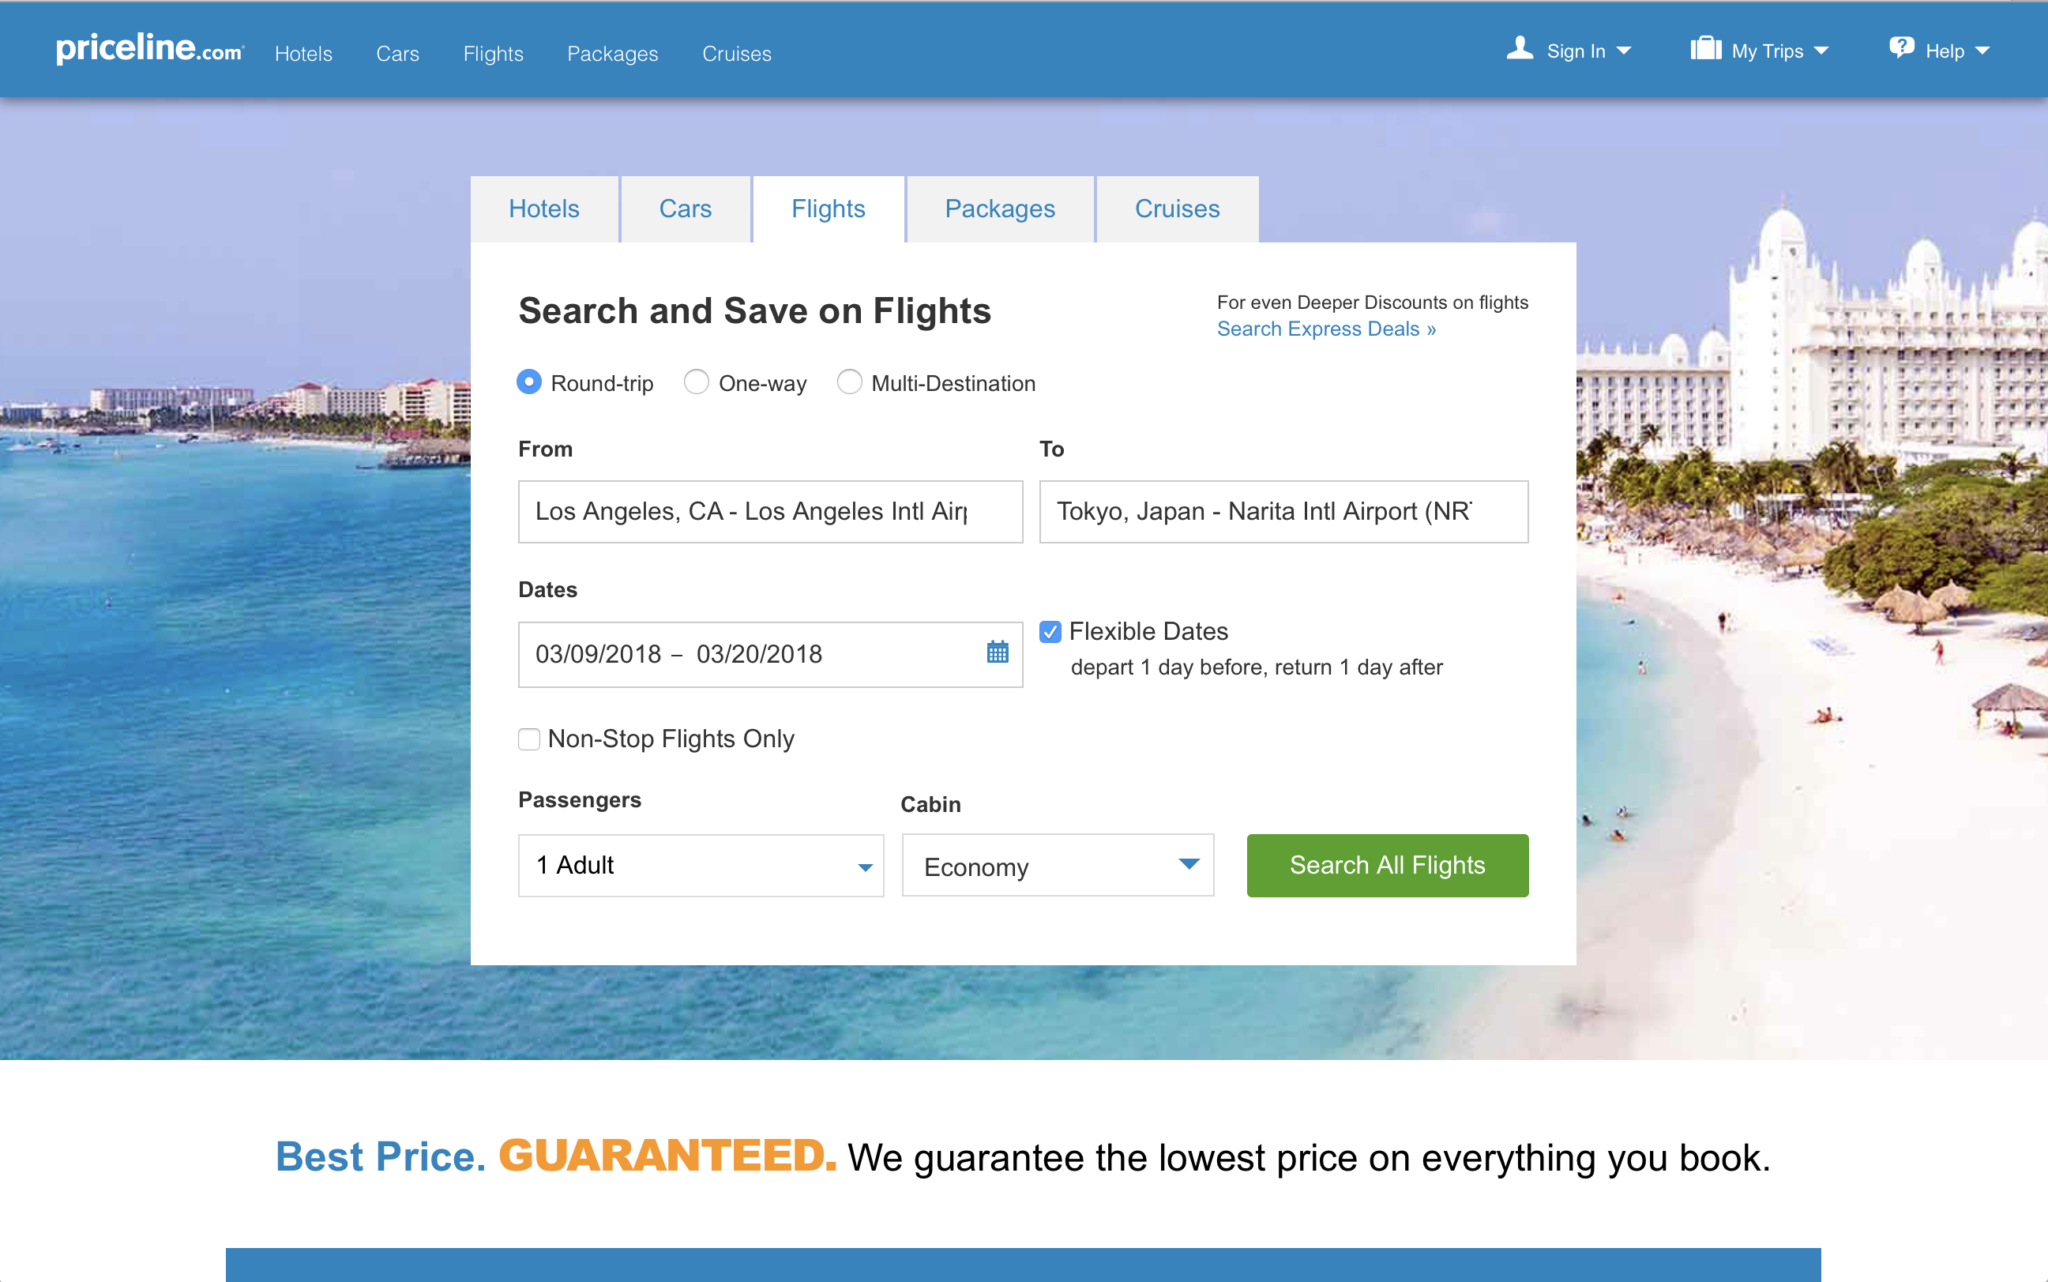 A complete guide to booking travel with priceline [2019].